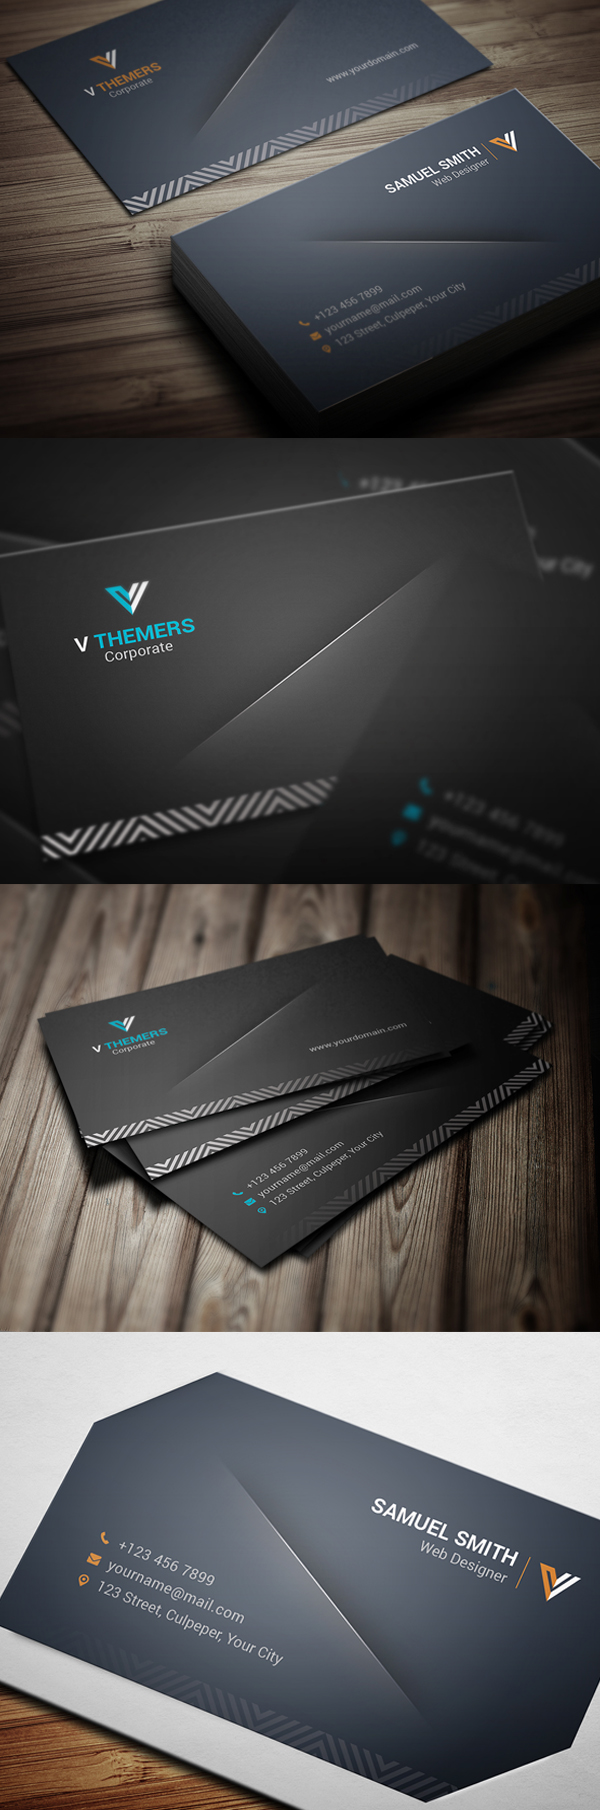 02 Business Card Design